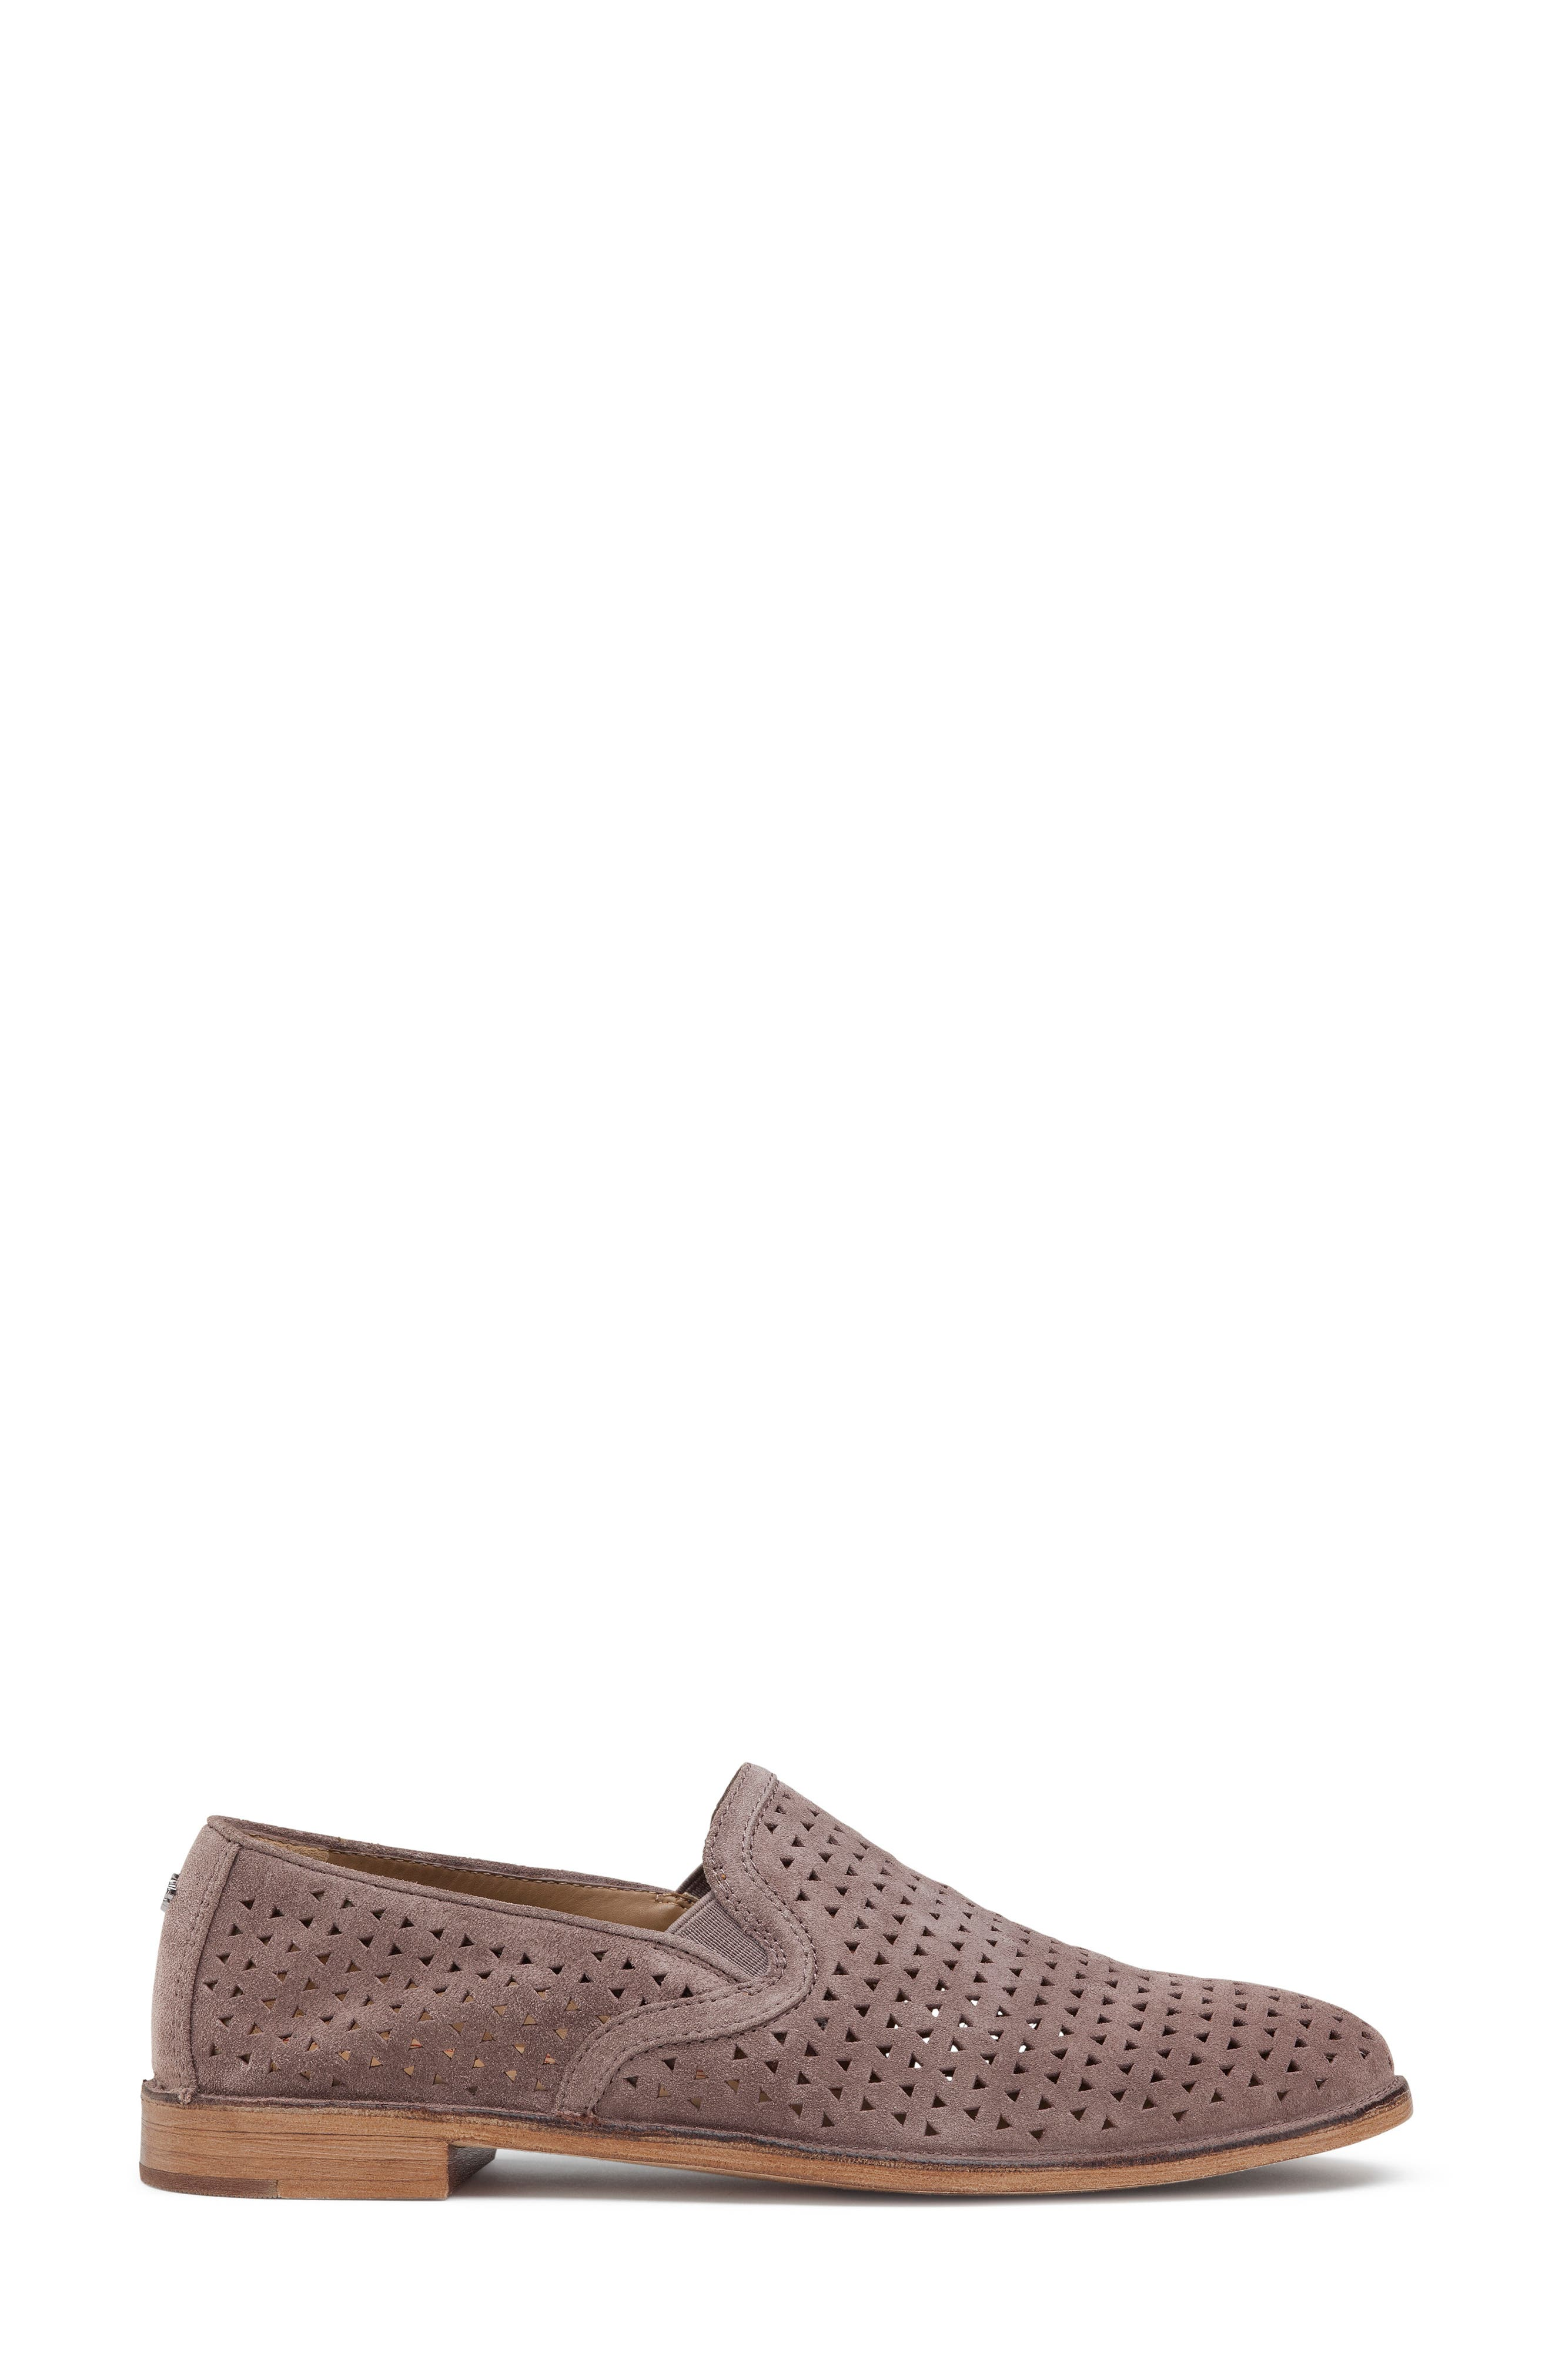 TRASK, Ali Perforated Loafer, Alternate thumbnail 3, color, BLUSH SUEDE